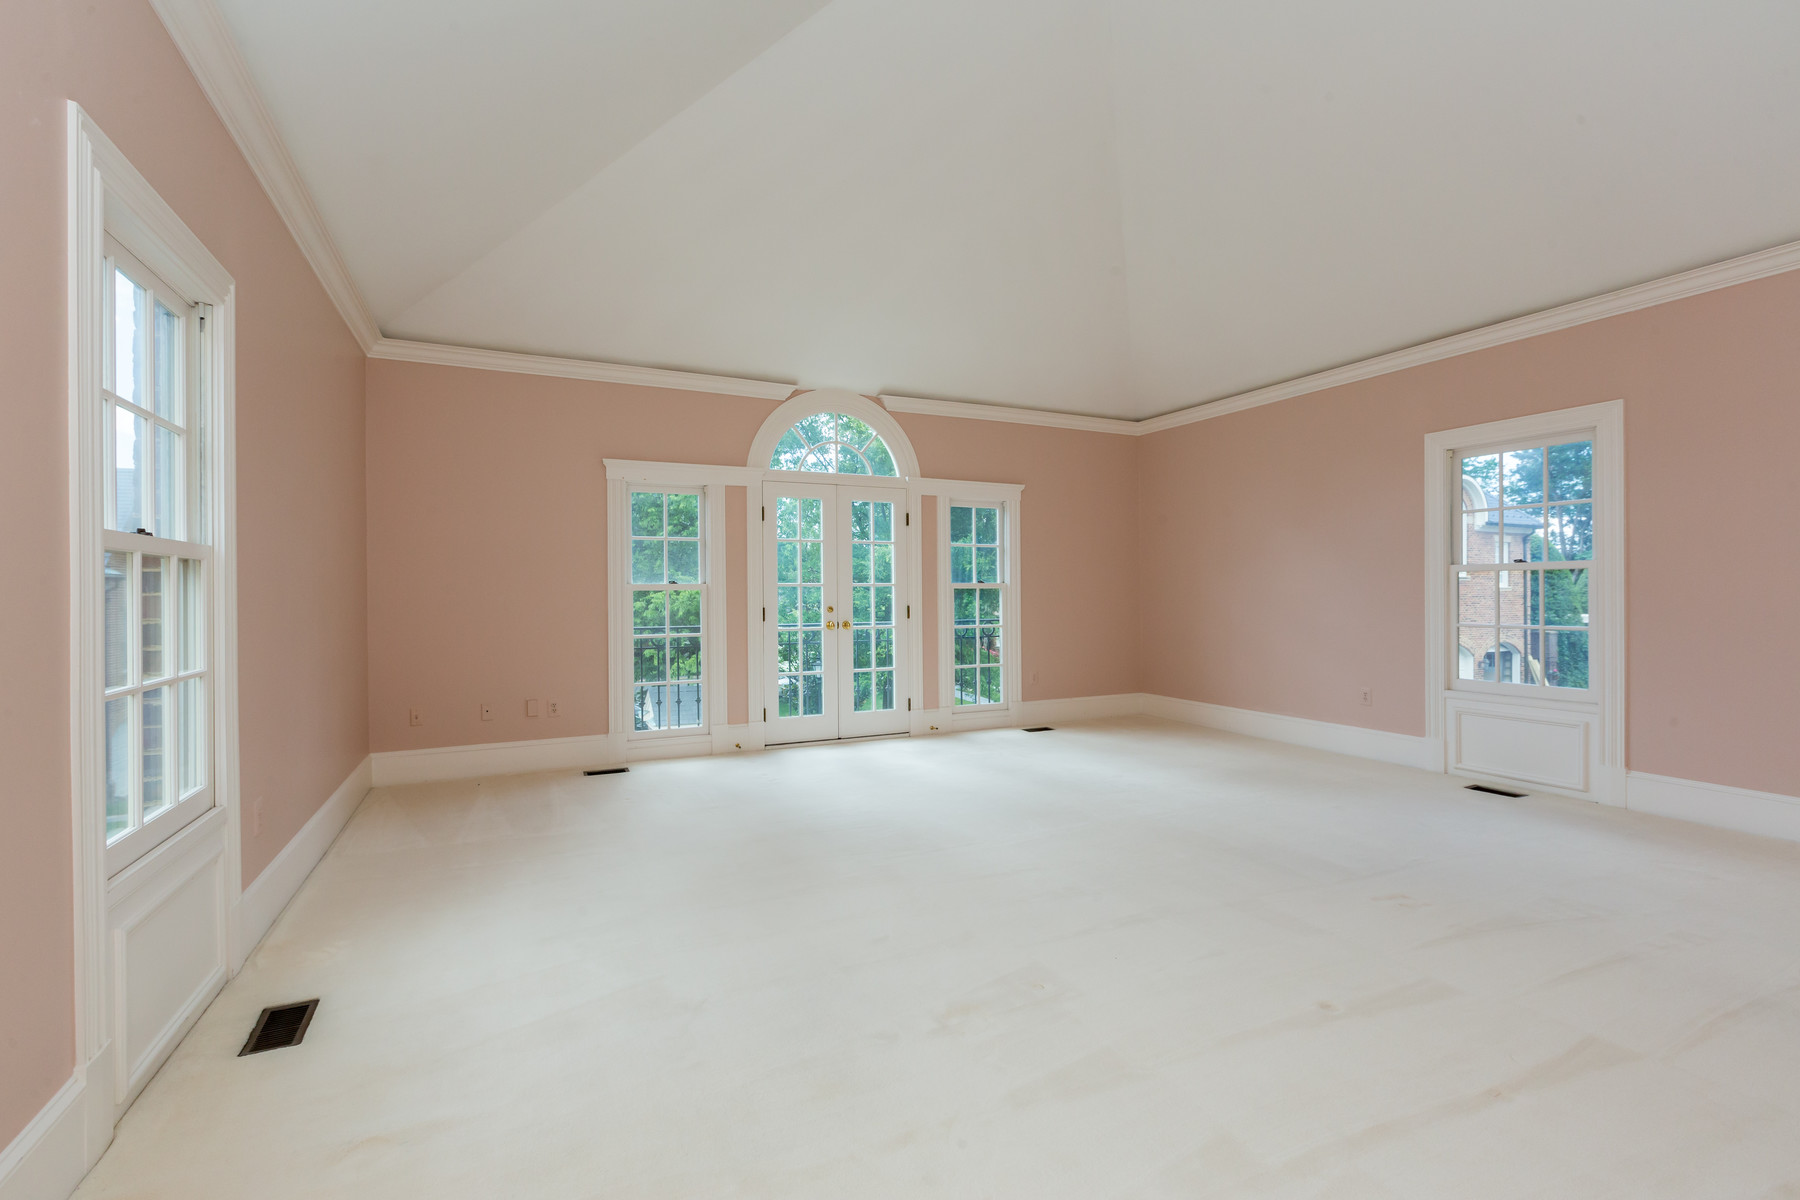 Additional photo for property listing at 1209 Stuart Robeson Drive, Mclean  McLean, Virginia 22101 United States